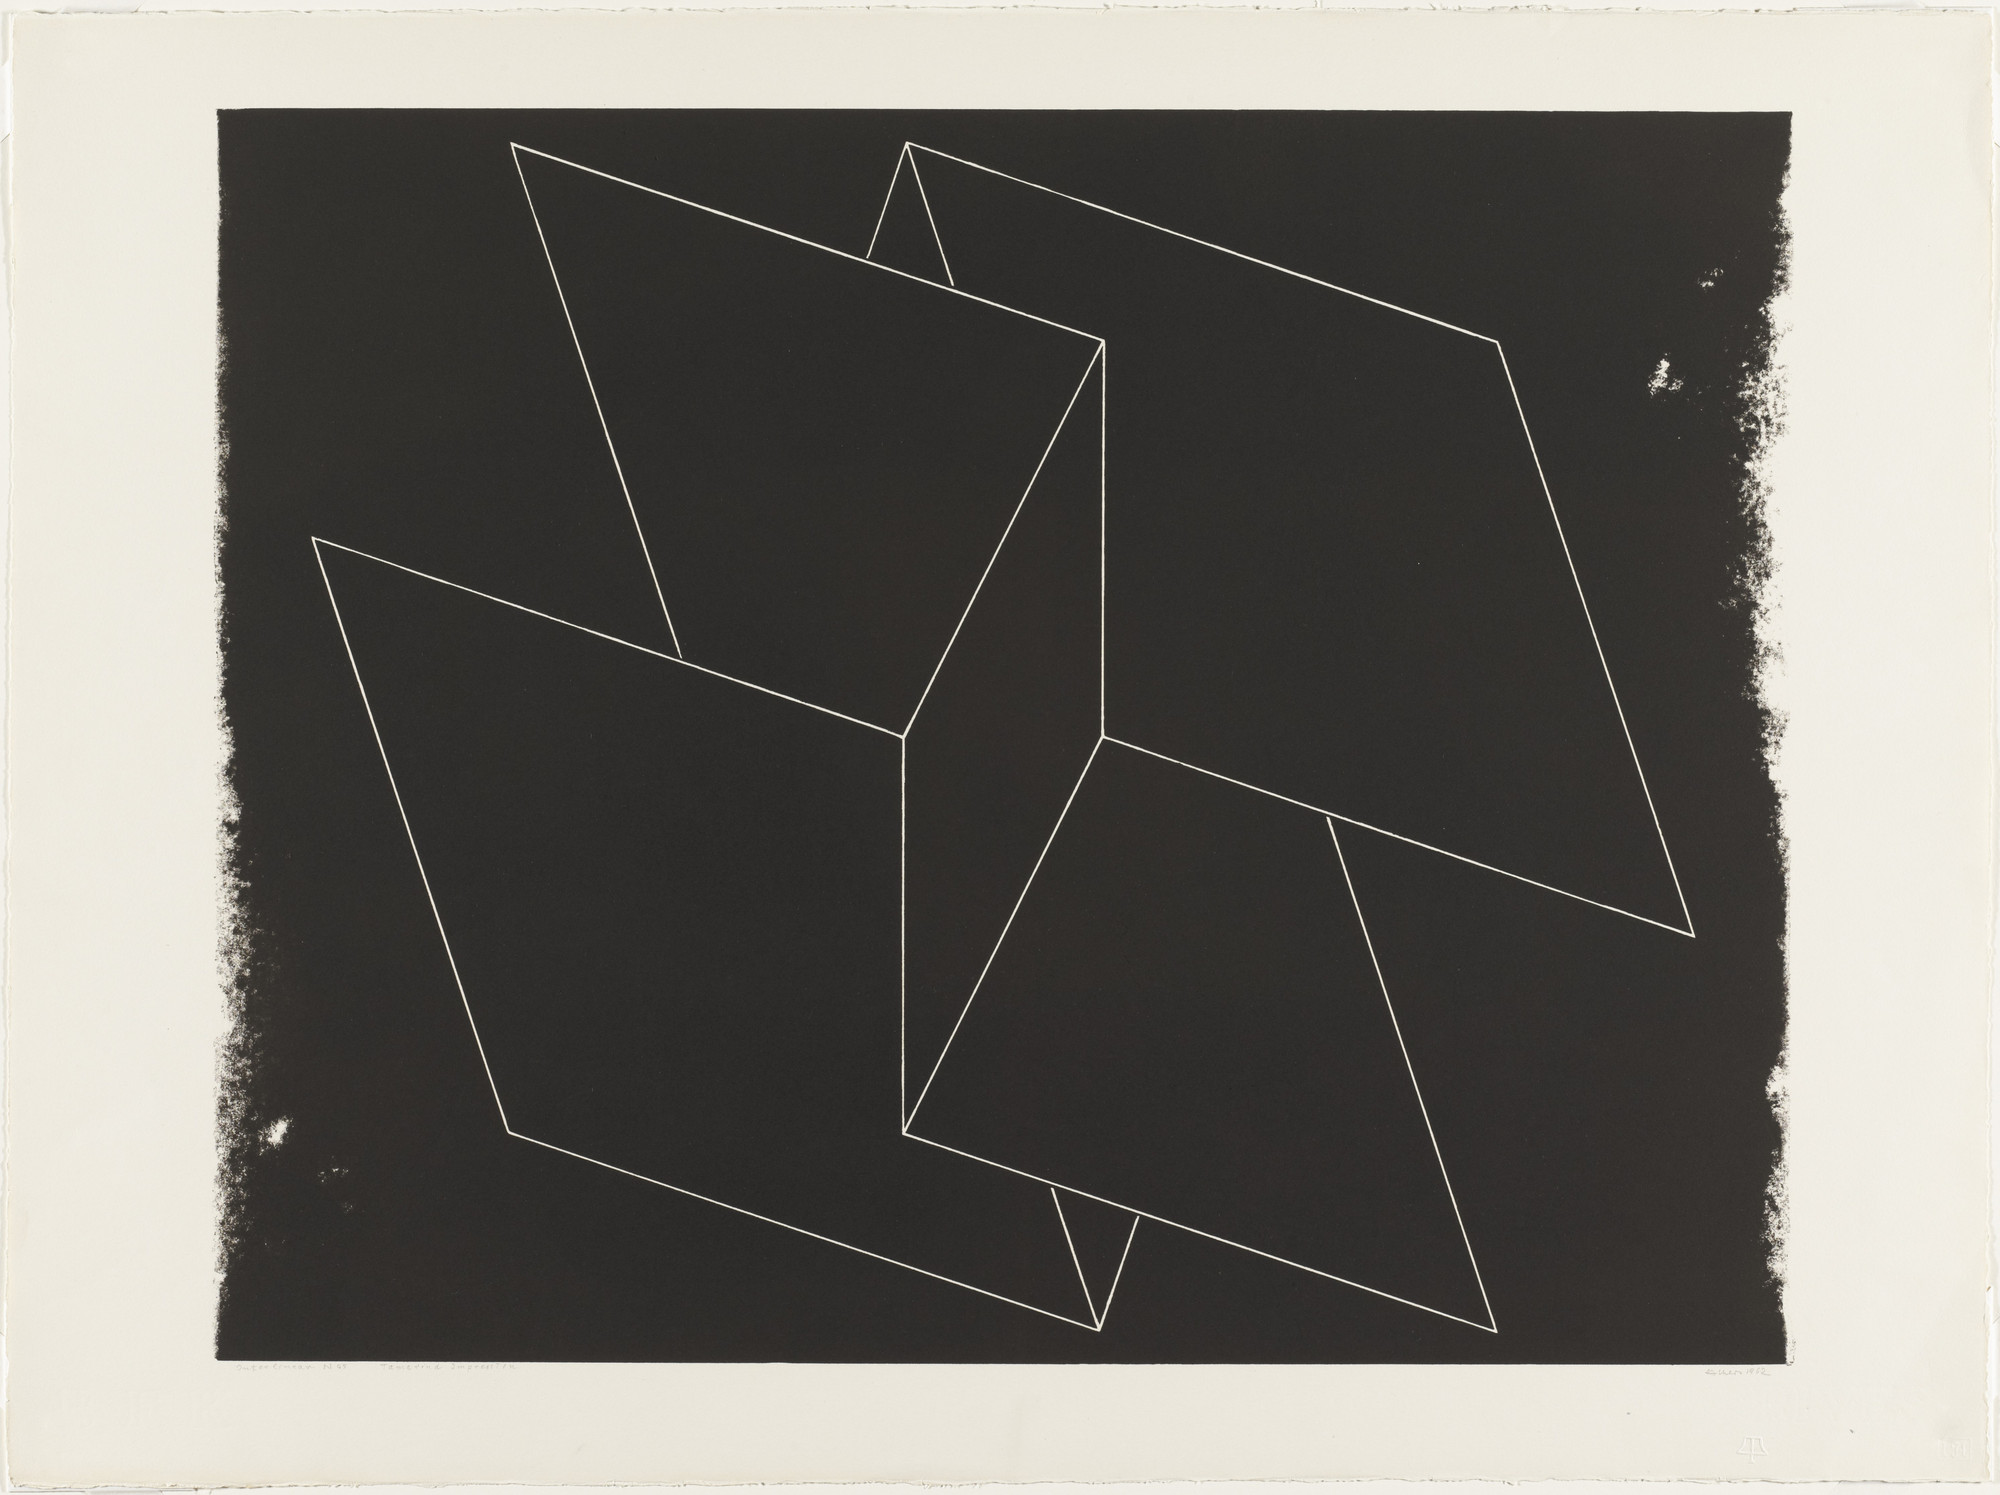 Josef Albers. Interlinear N 65. (May 8-June 1) 1962